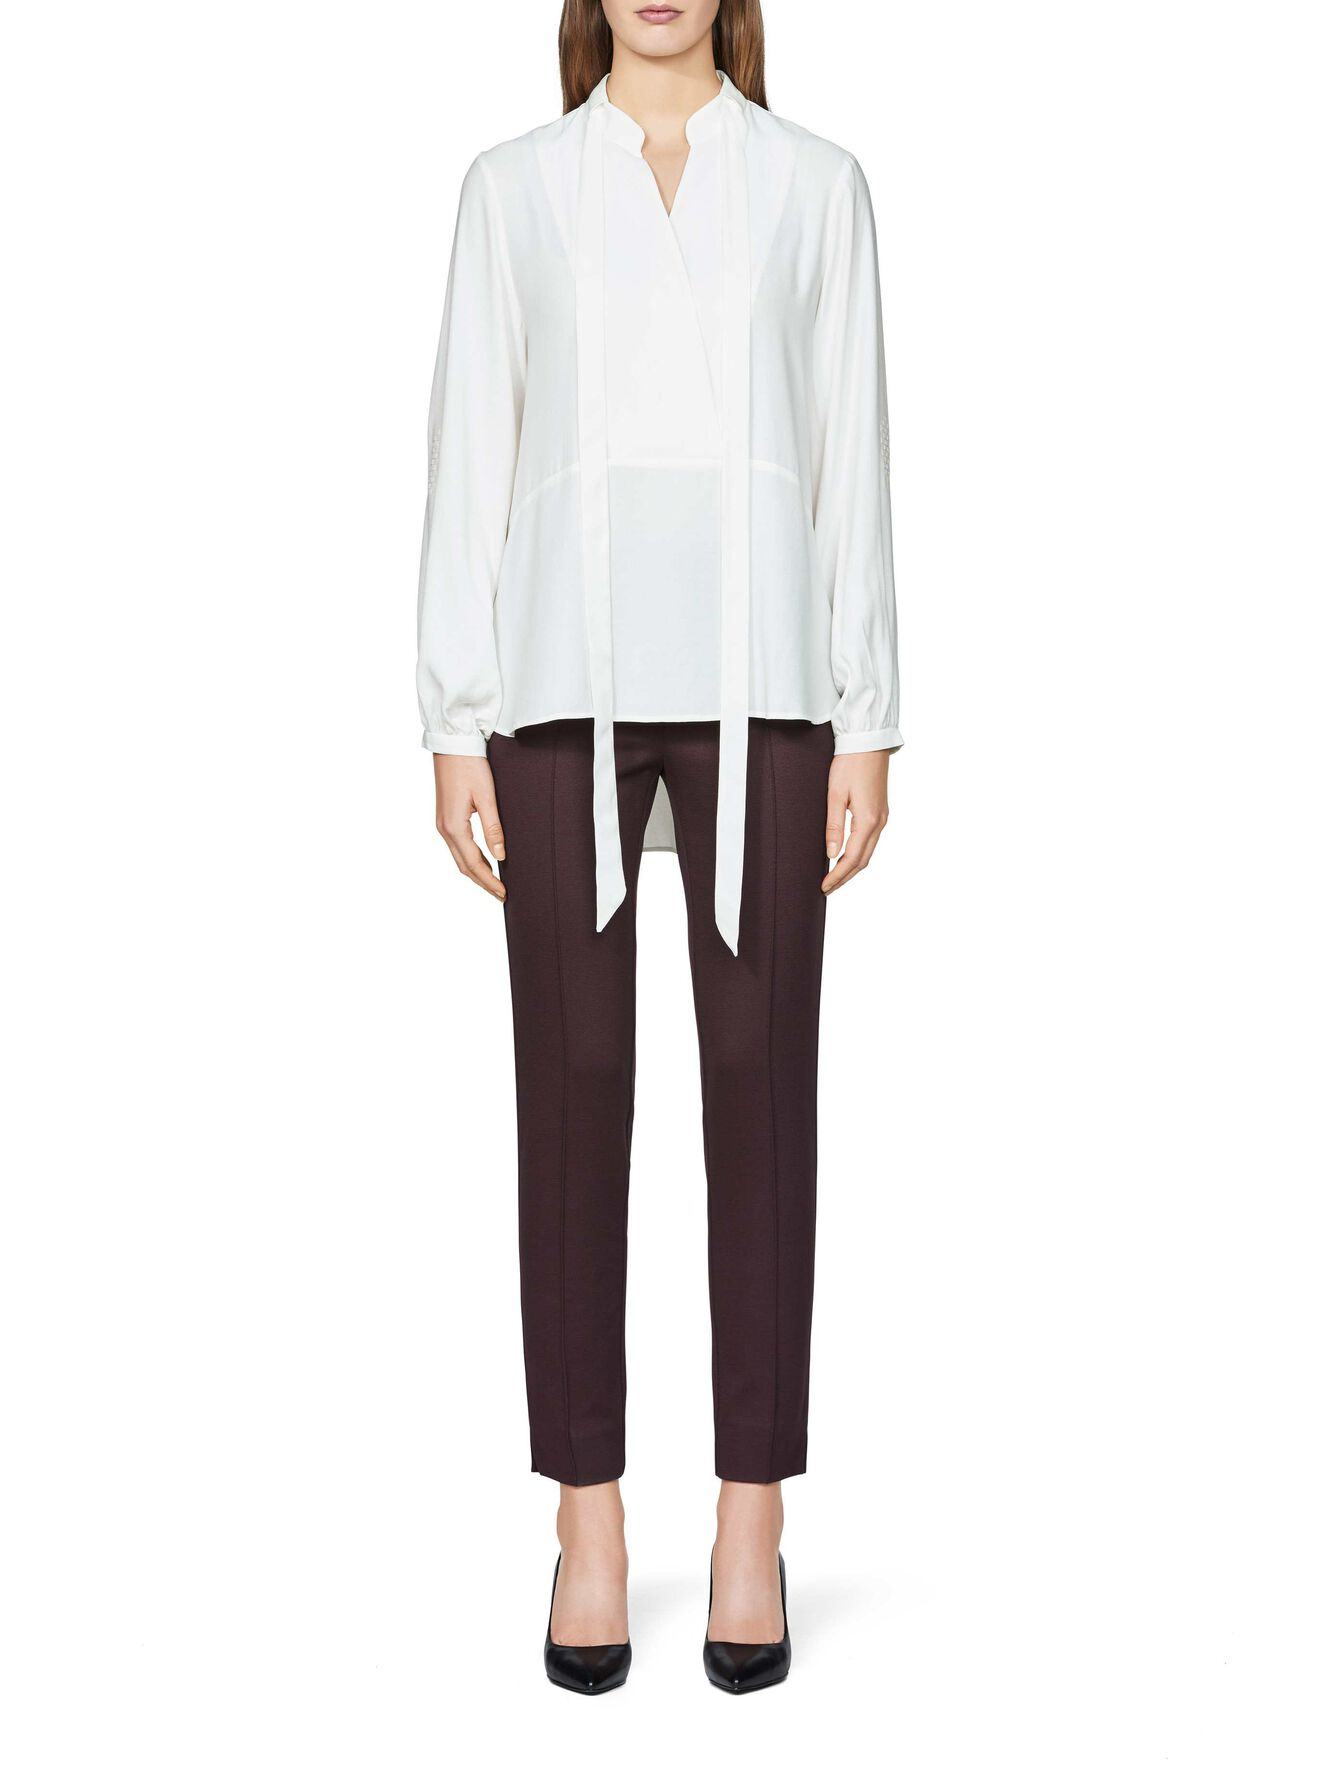 Halia shirt  in Star White from Tiger of Sweden